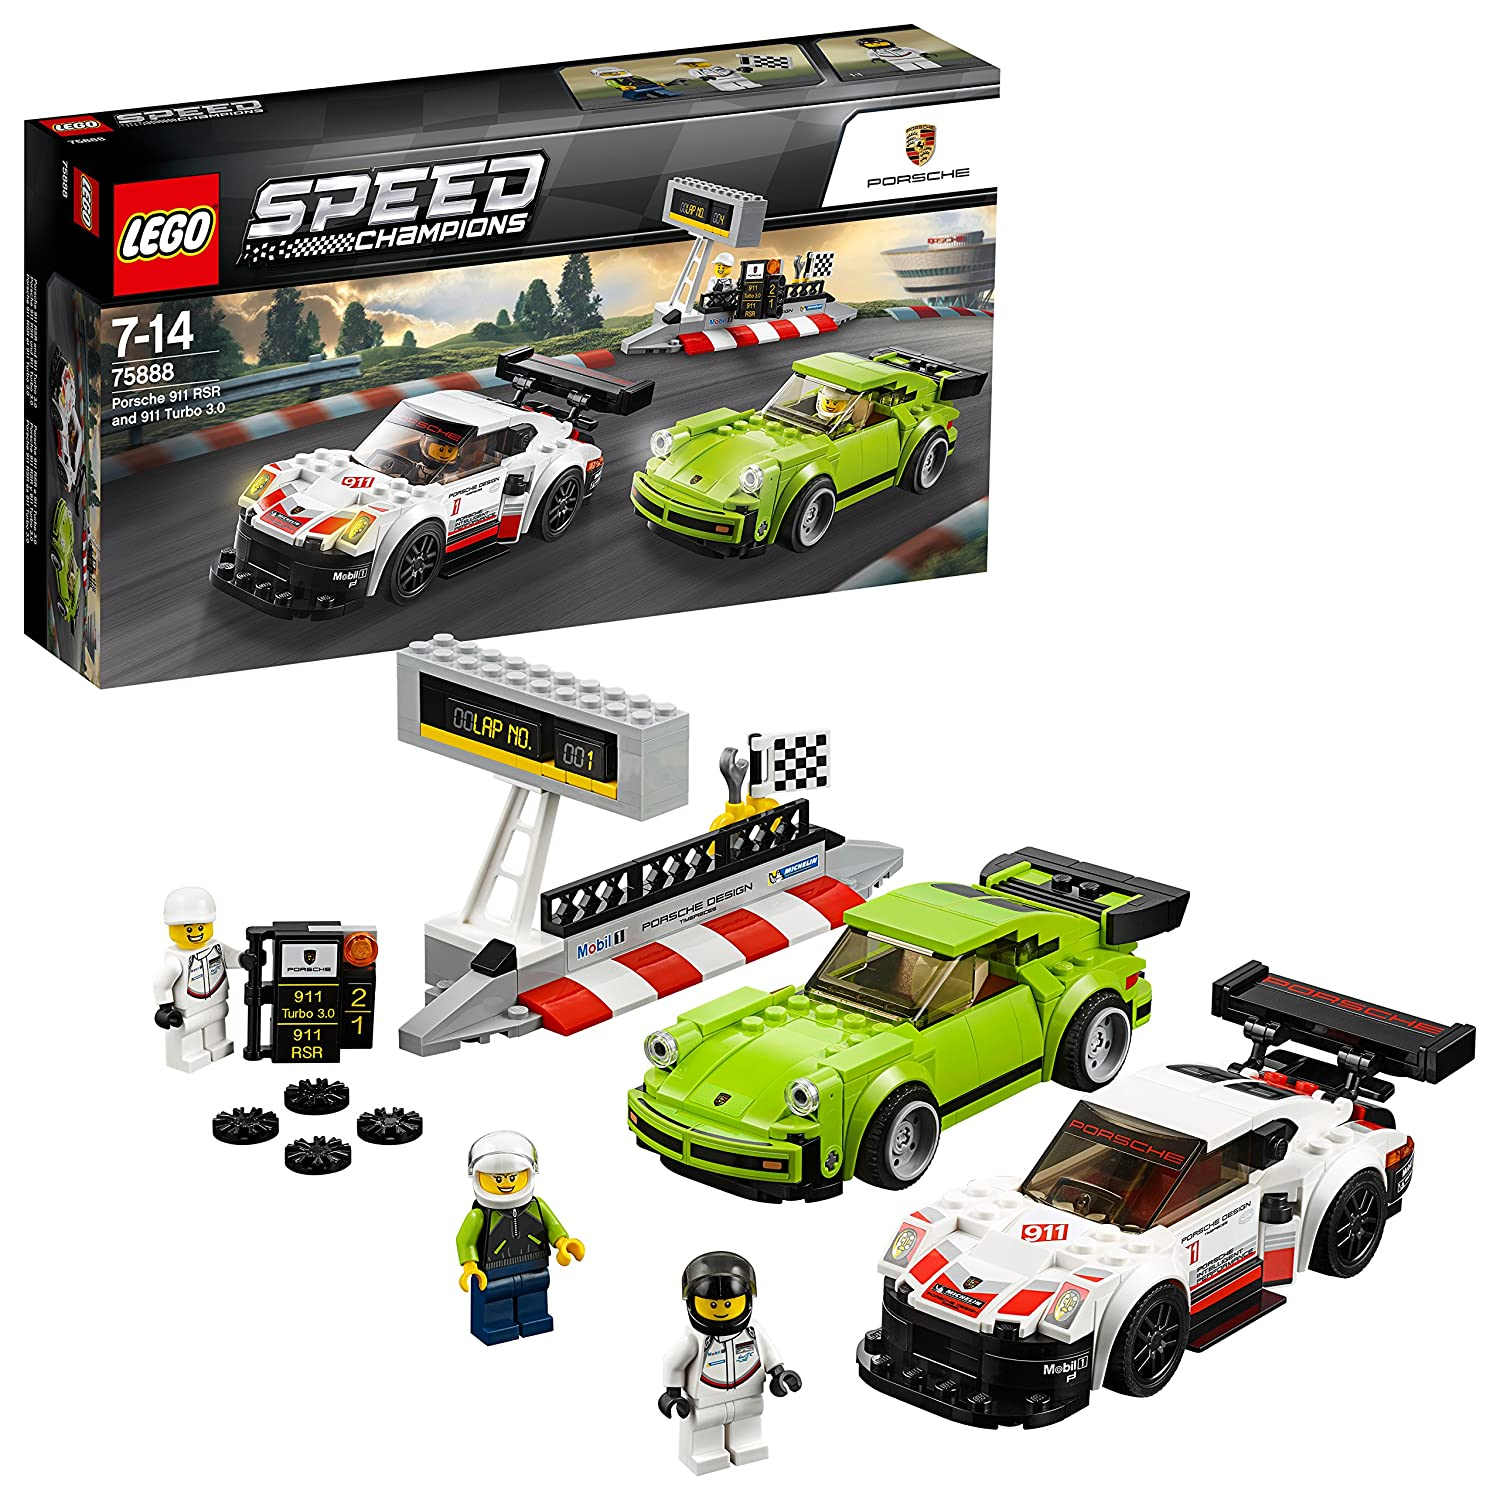 Amazon.com: LEGO Speed Champions Porsche 911 RSR and 911 Turbo 3.0 75888: Toys & Games